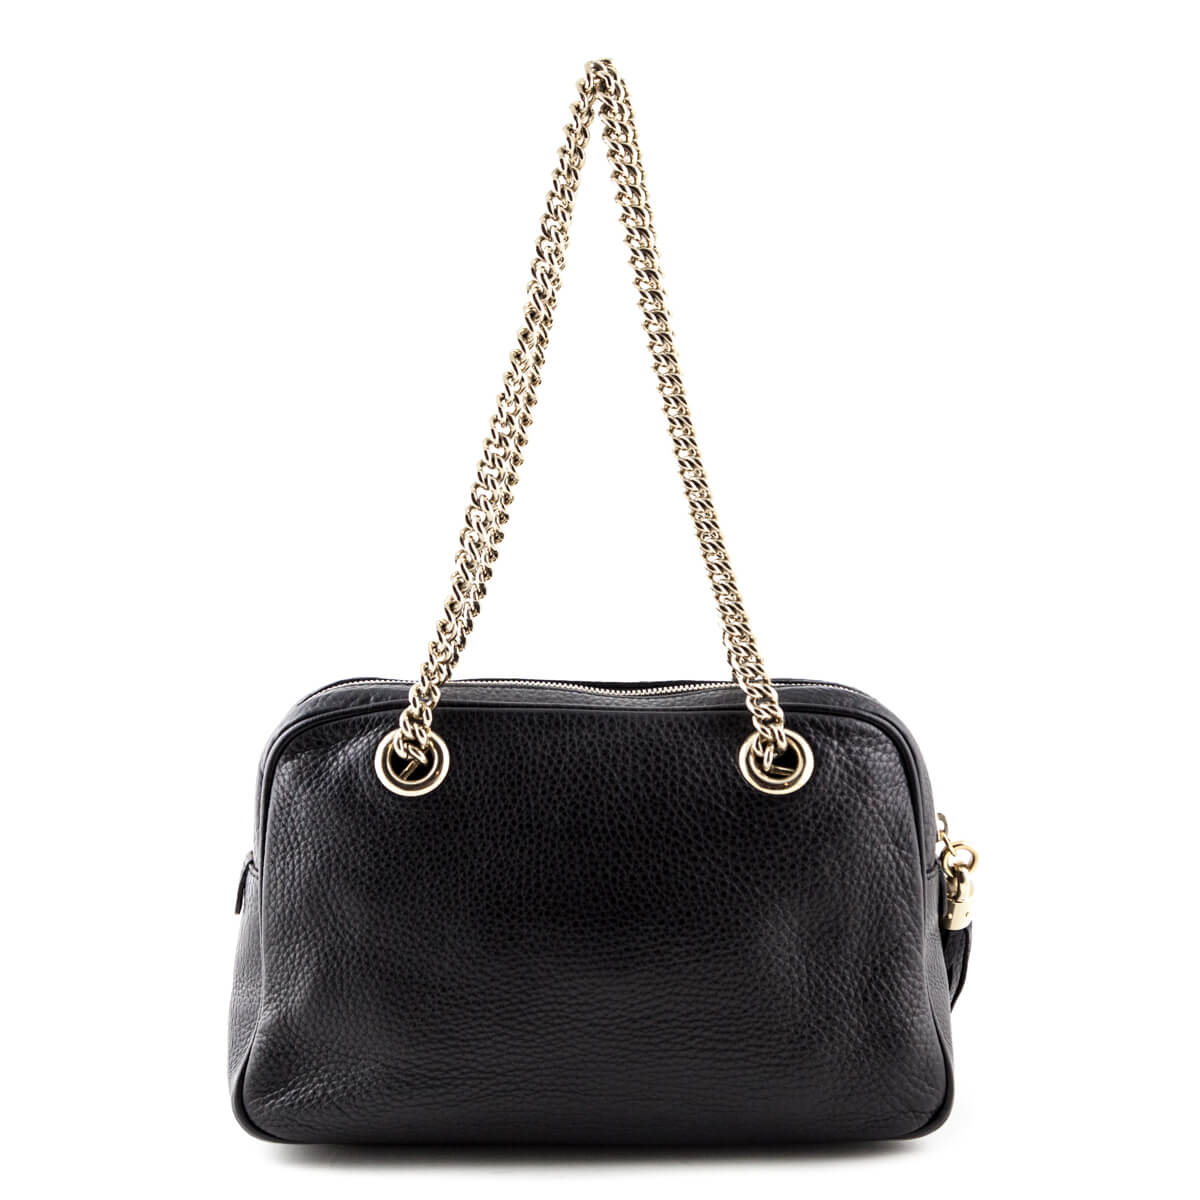 6635ac544ab ... Gucci Black Small Soho Chain Shoulder bag - LOVE that BAG - Preowned  Authentic Designer Handbags ...